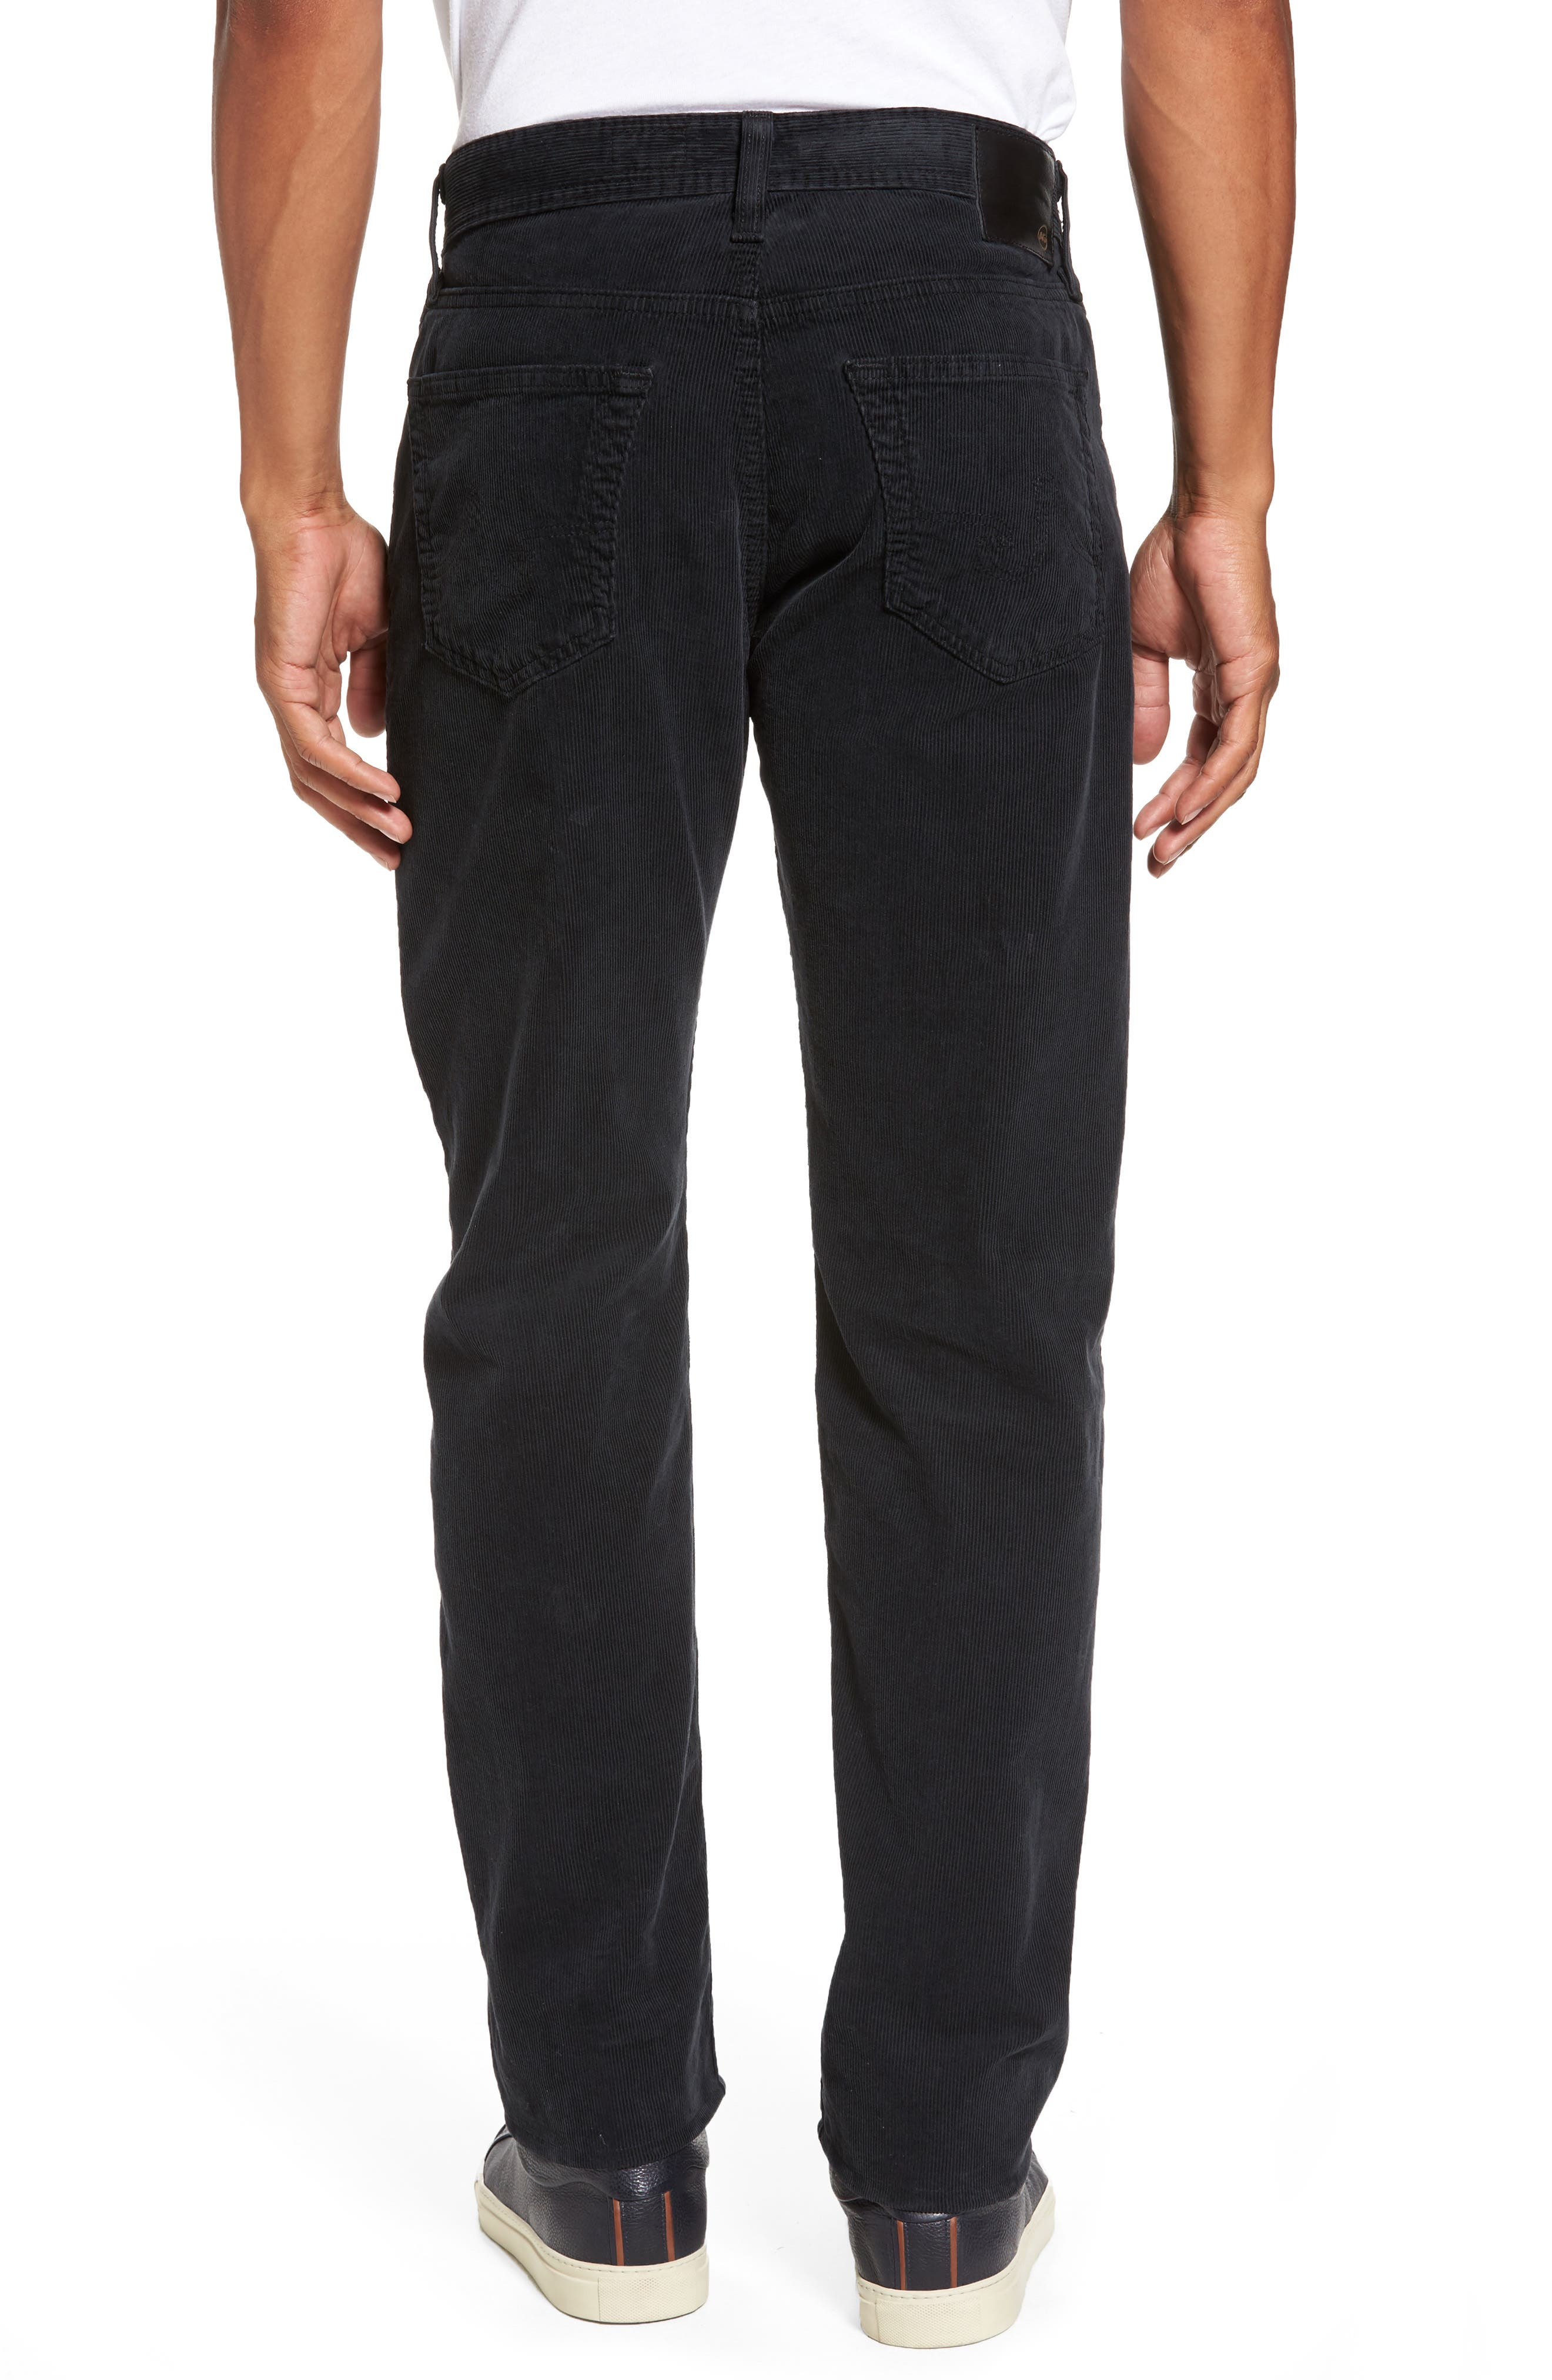 'Graduate' Tailored Straight Leg Corduroy Pants,                             Alternate thumbnail 2, color,                             017